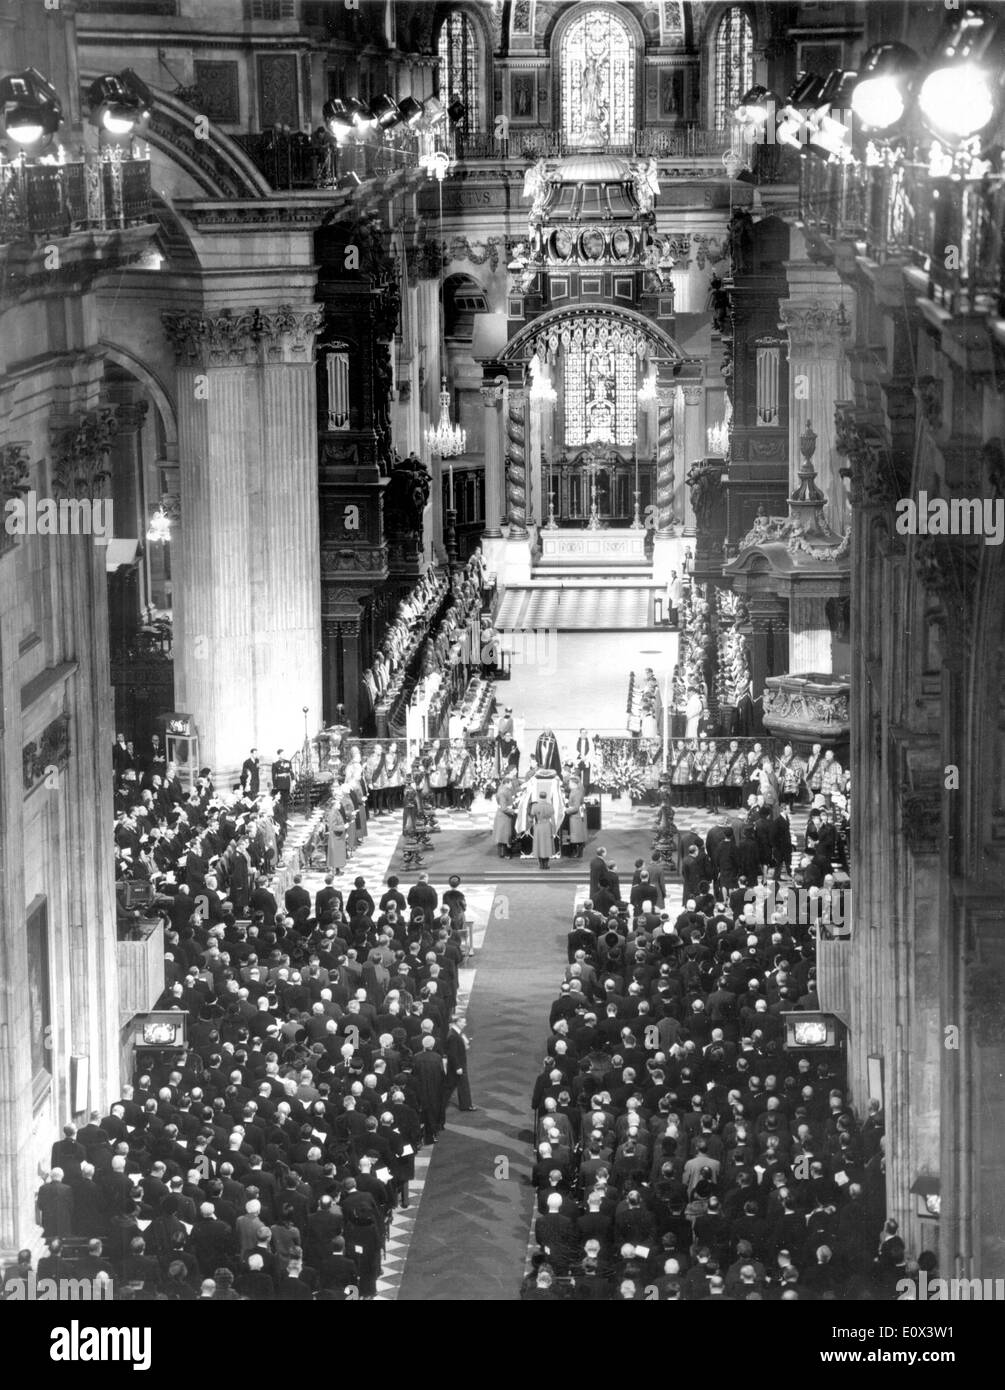 Funeral of Sir Winston Churchill - Stock Image